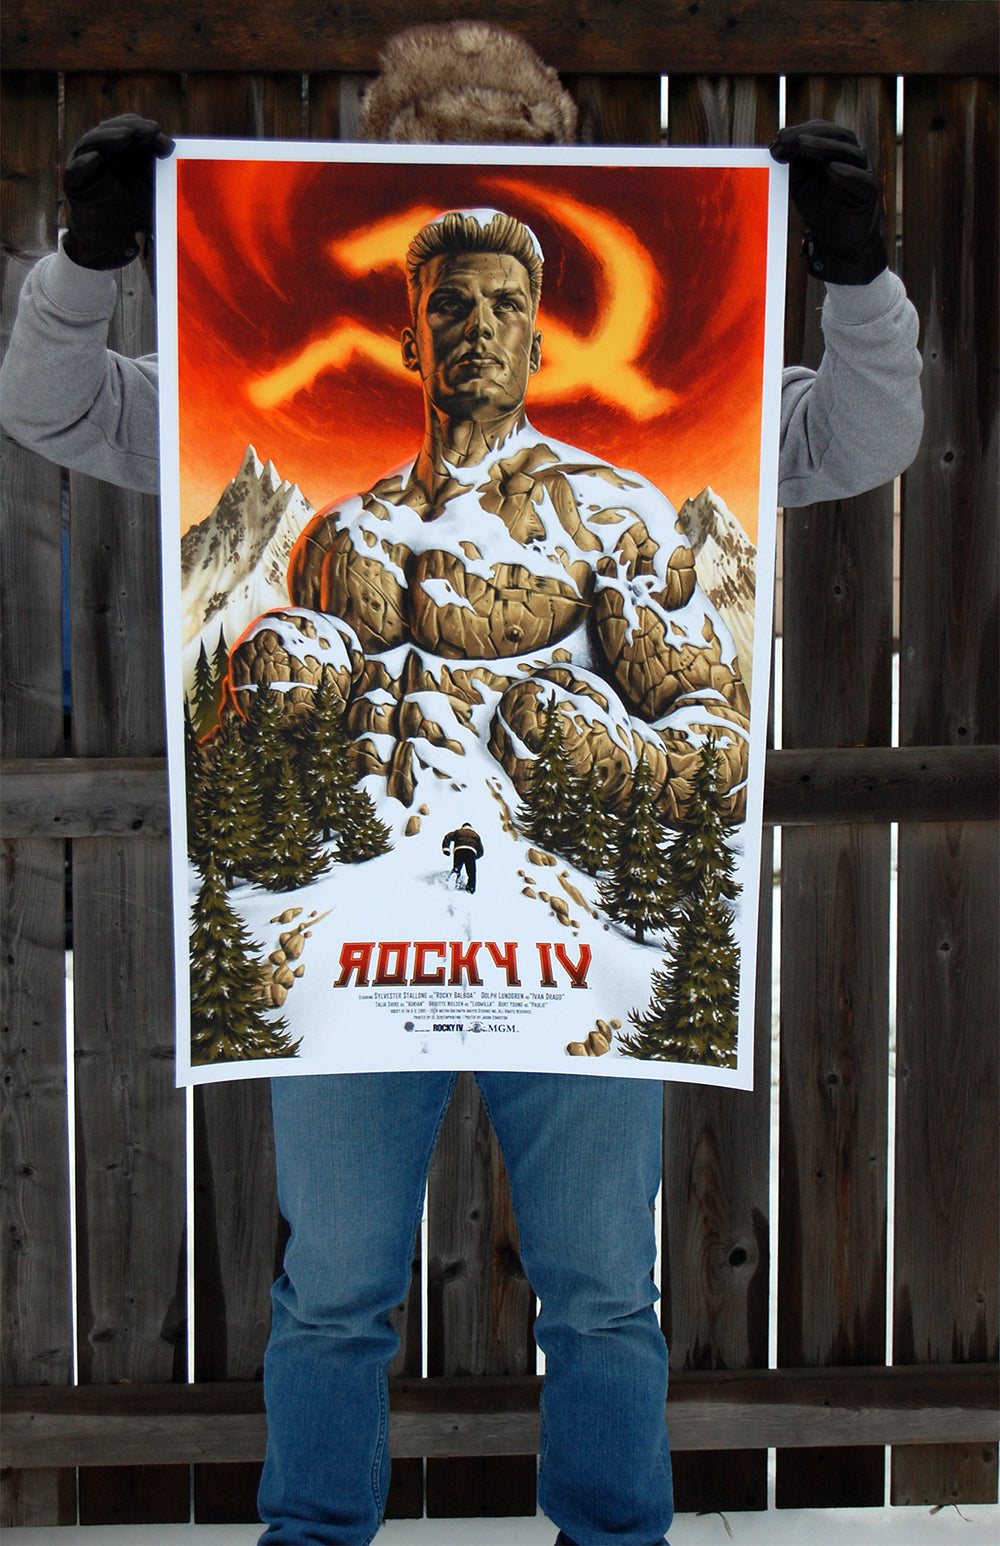 Rocky IV by Jason Edmiston - Skuzzles - Regular Edition